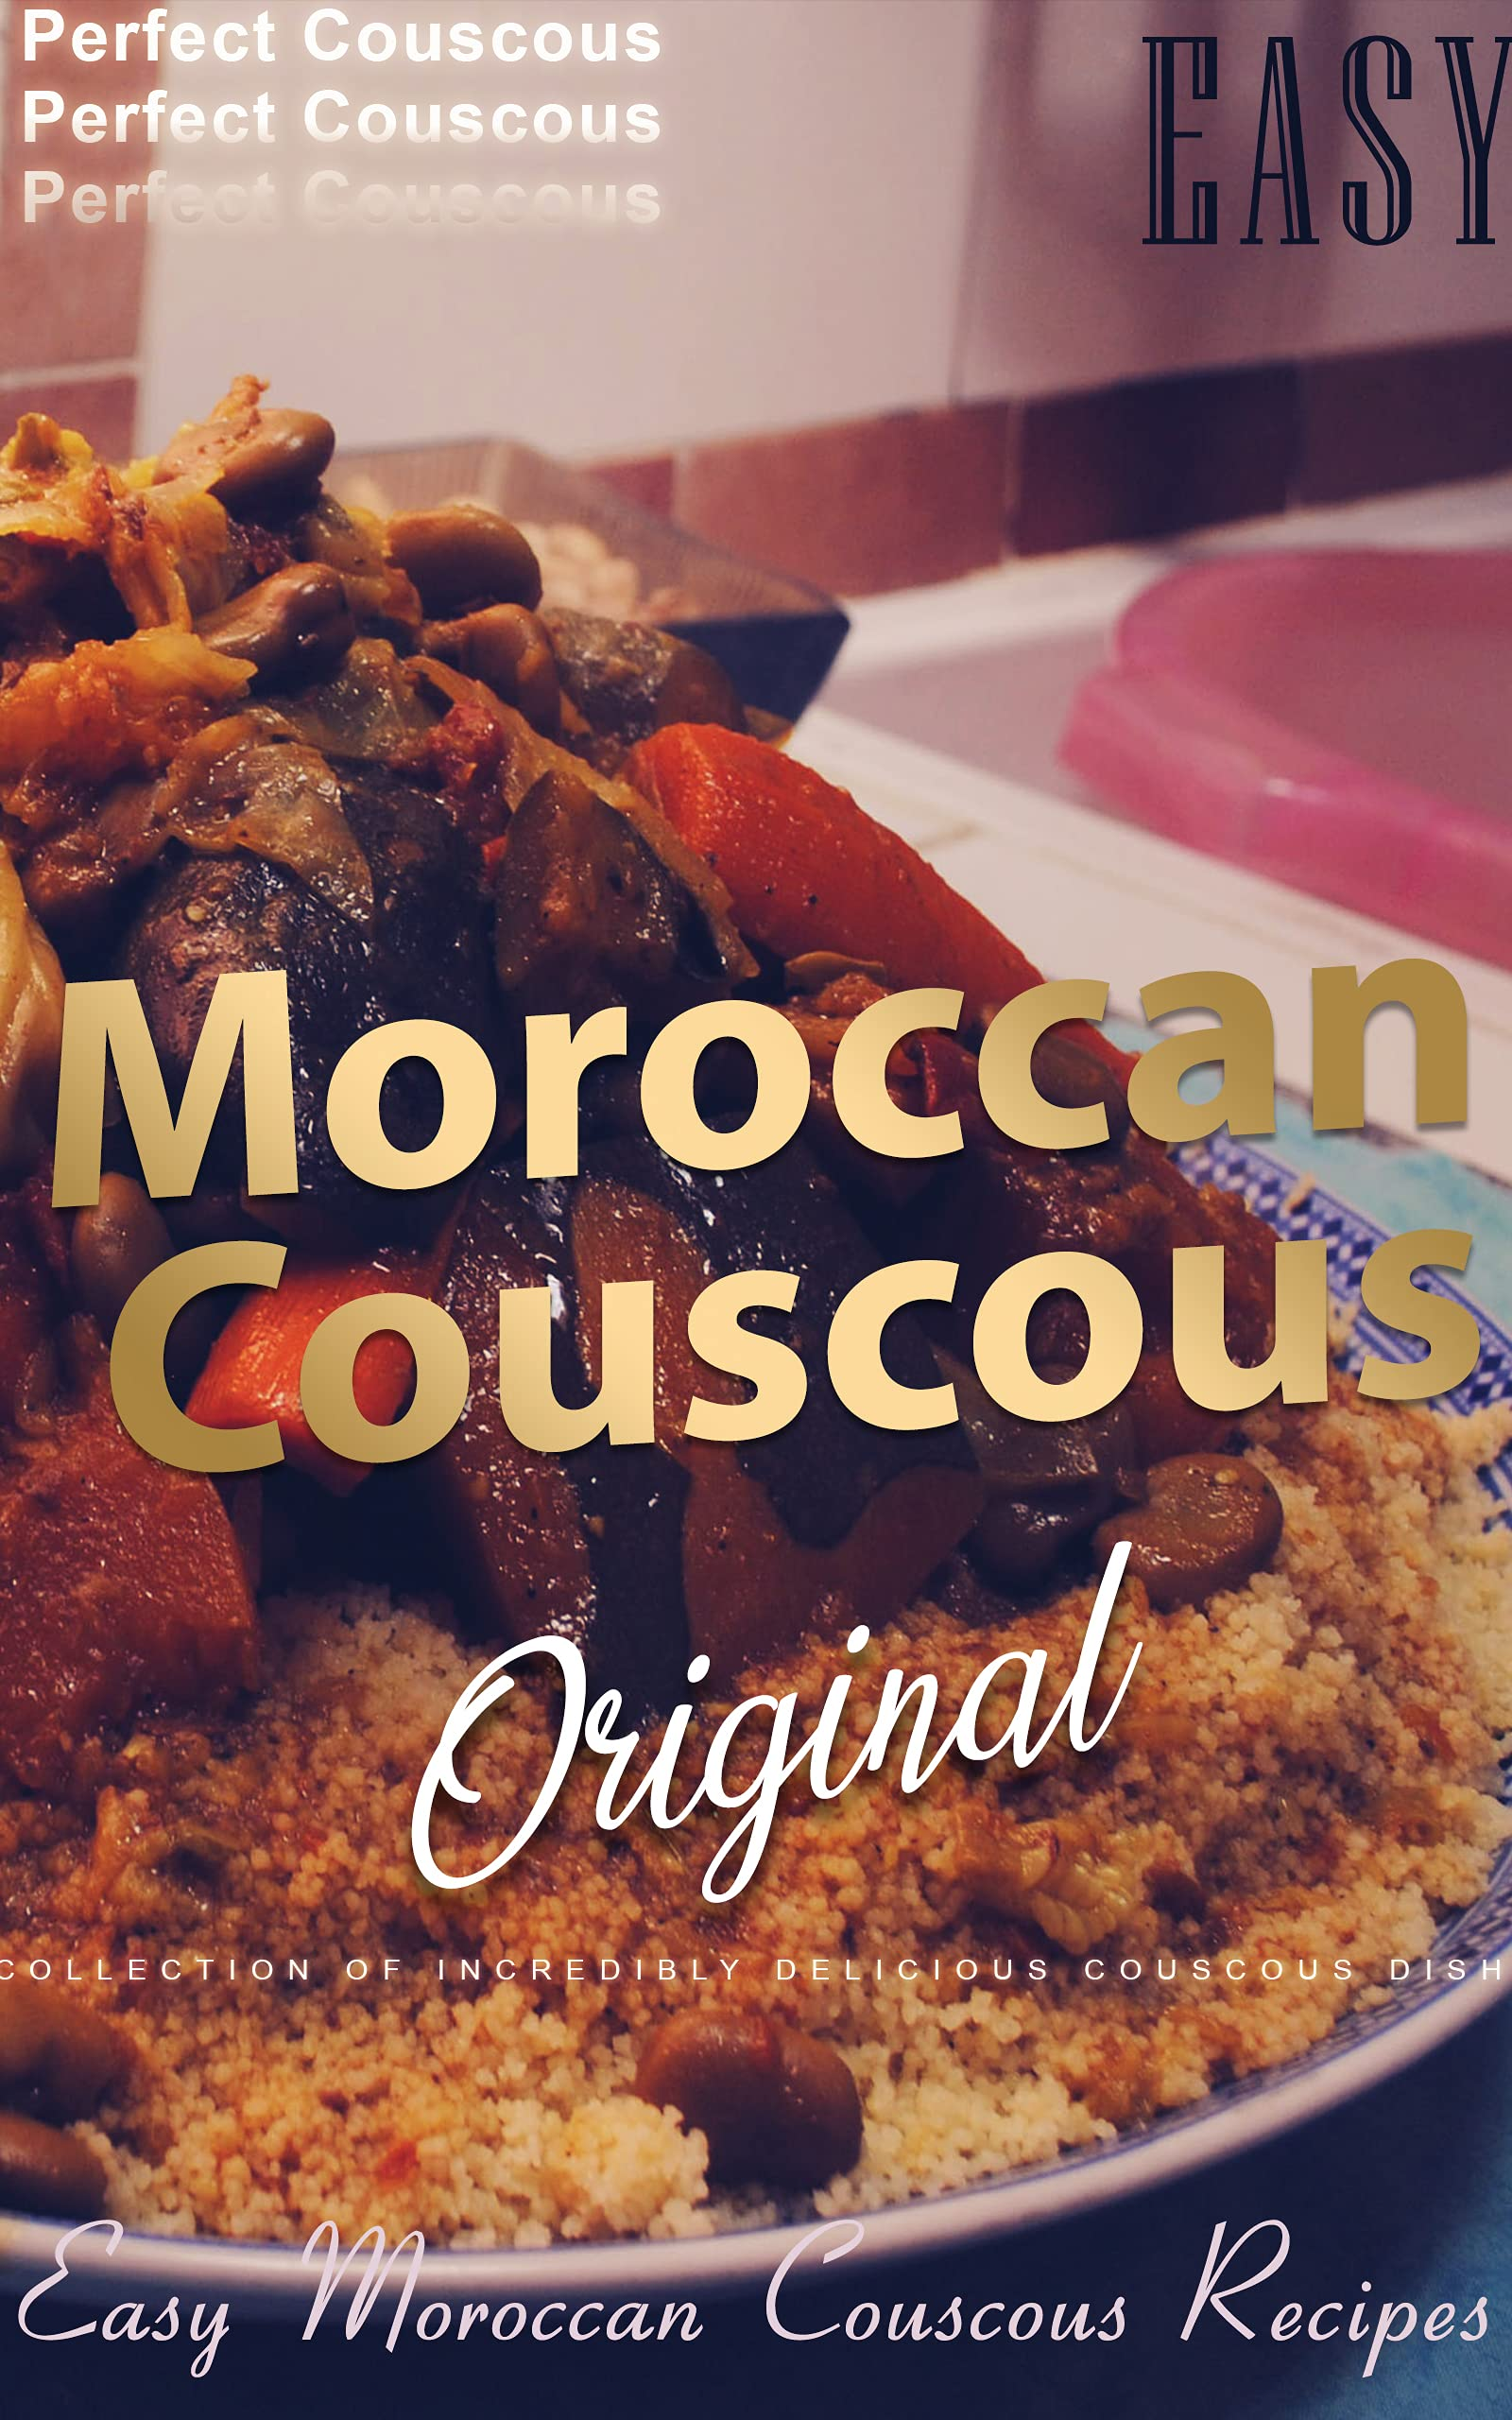 moroccan couscous: Easy, Flavorful moroccan couscous Recipes for Lifelong Health